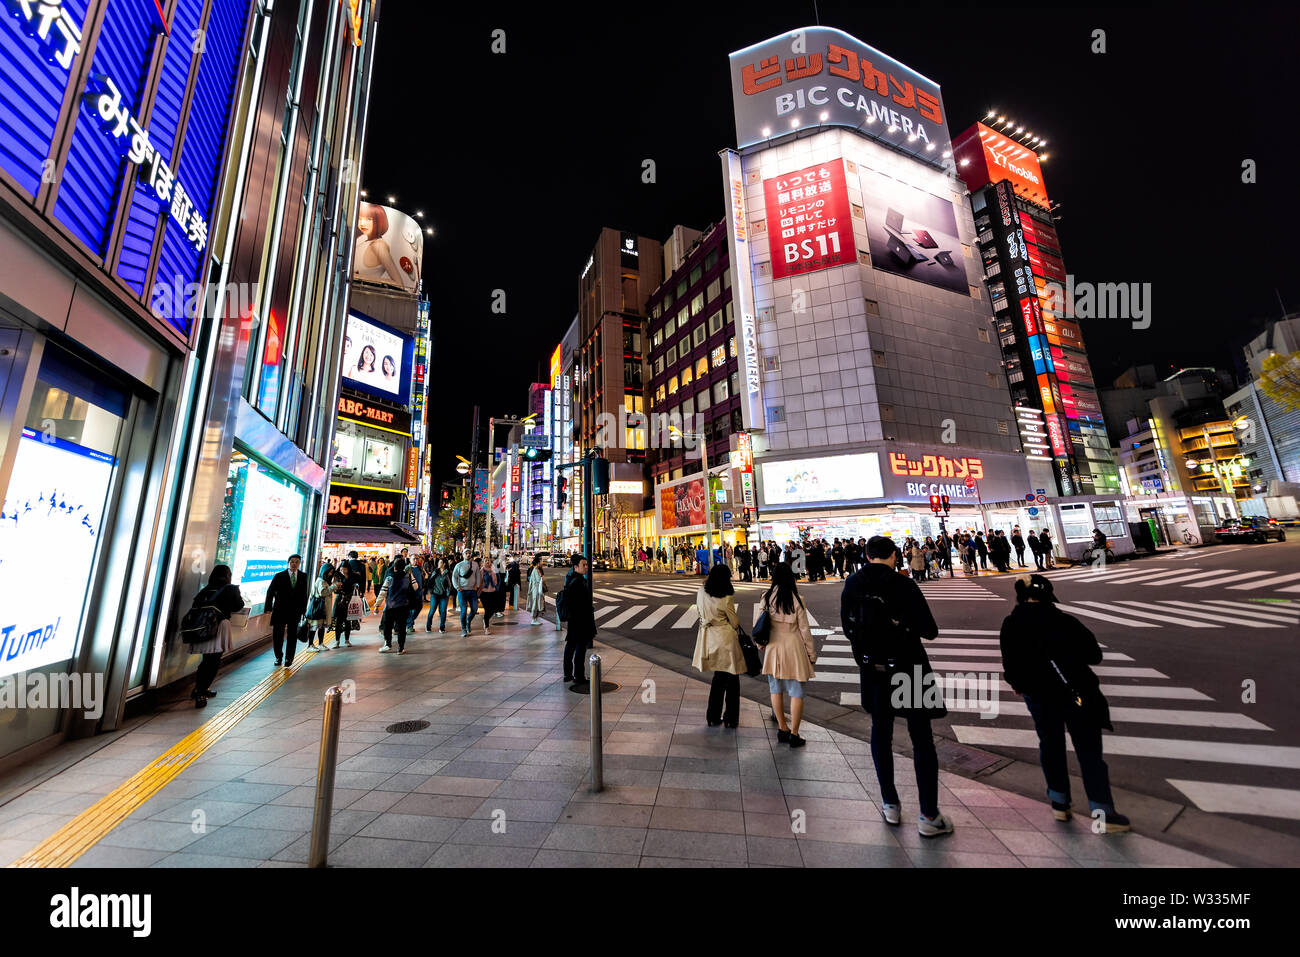 Shinjuku, Japan - April 4, 2019: Street outside view on Bic Camera electronics store shop at M Square with people crossing scramble crosswalk at night - Stock Image